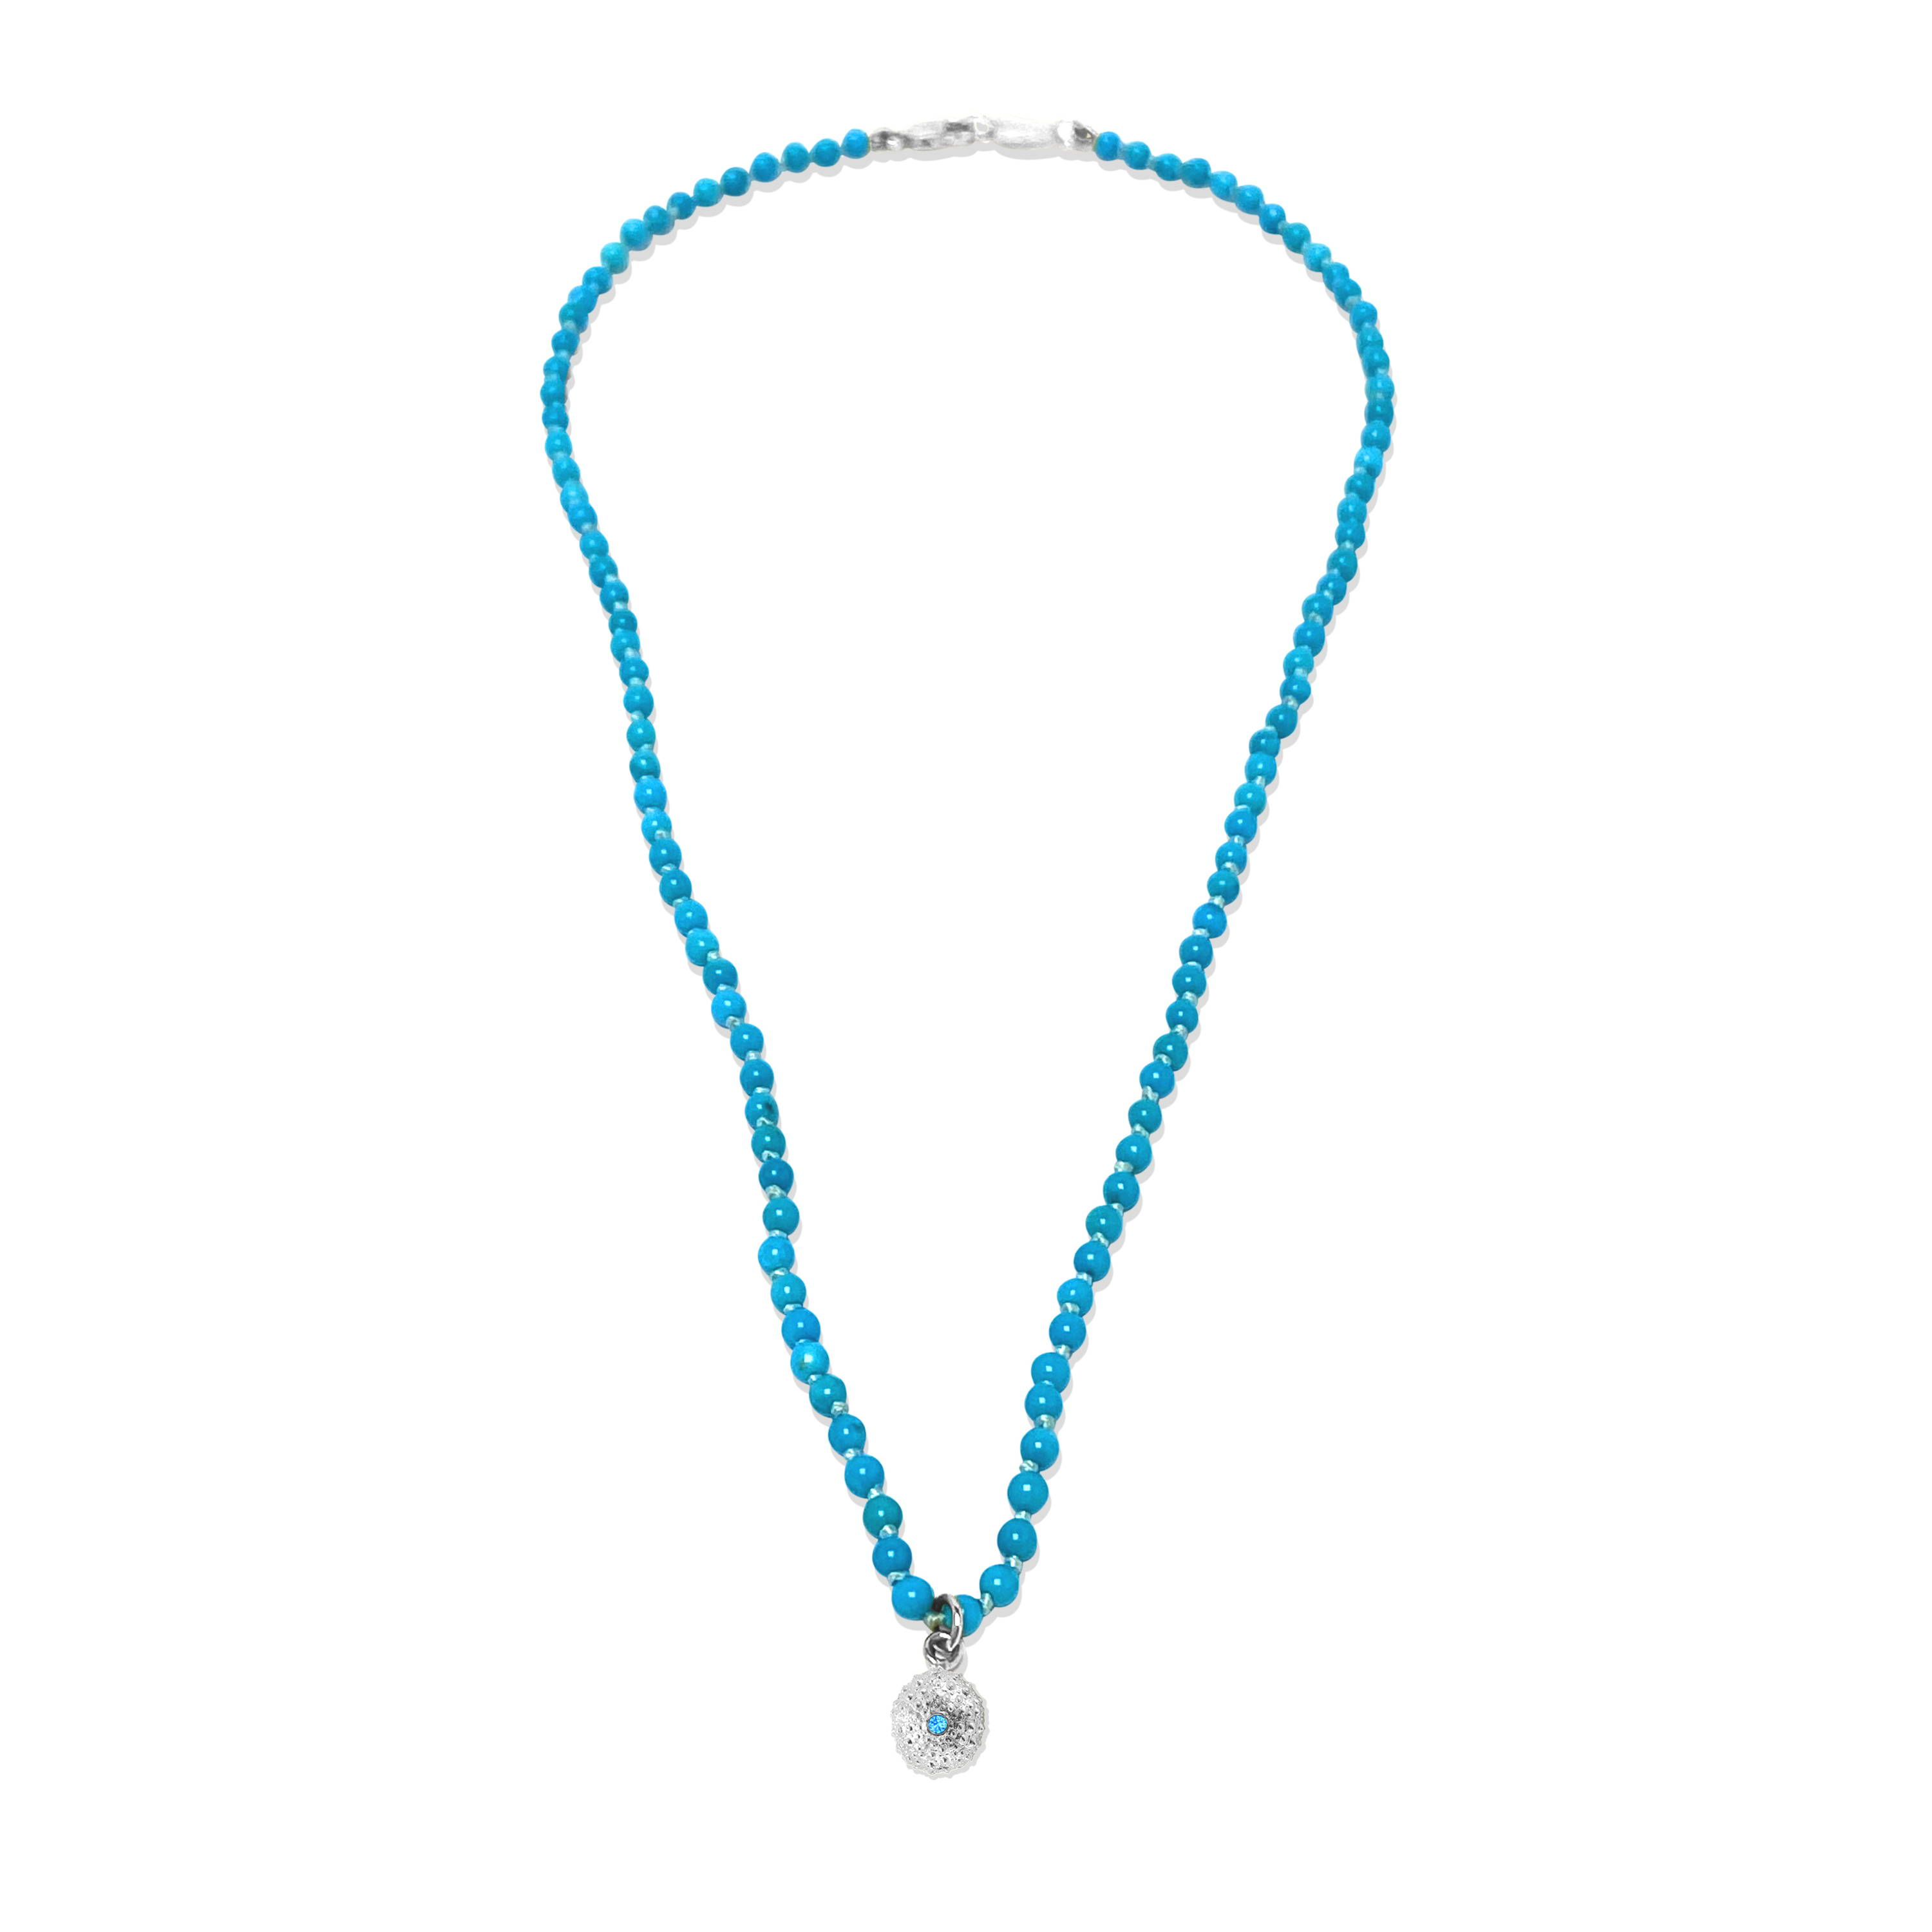 Beaded by the Ocean turquoise necklace with sea urchin charm